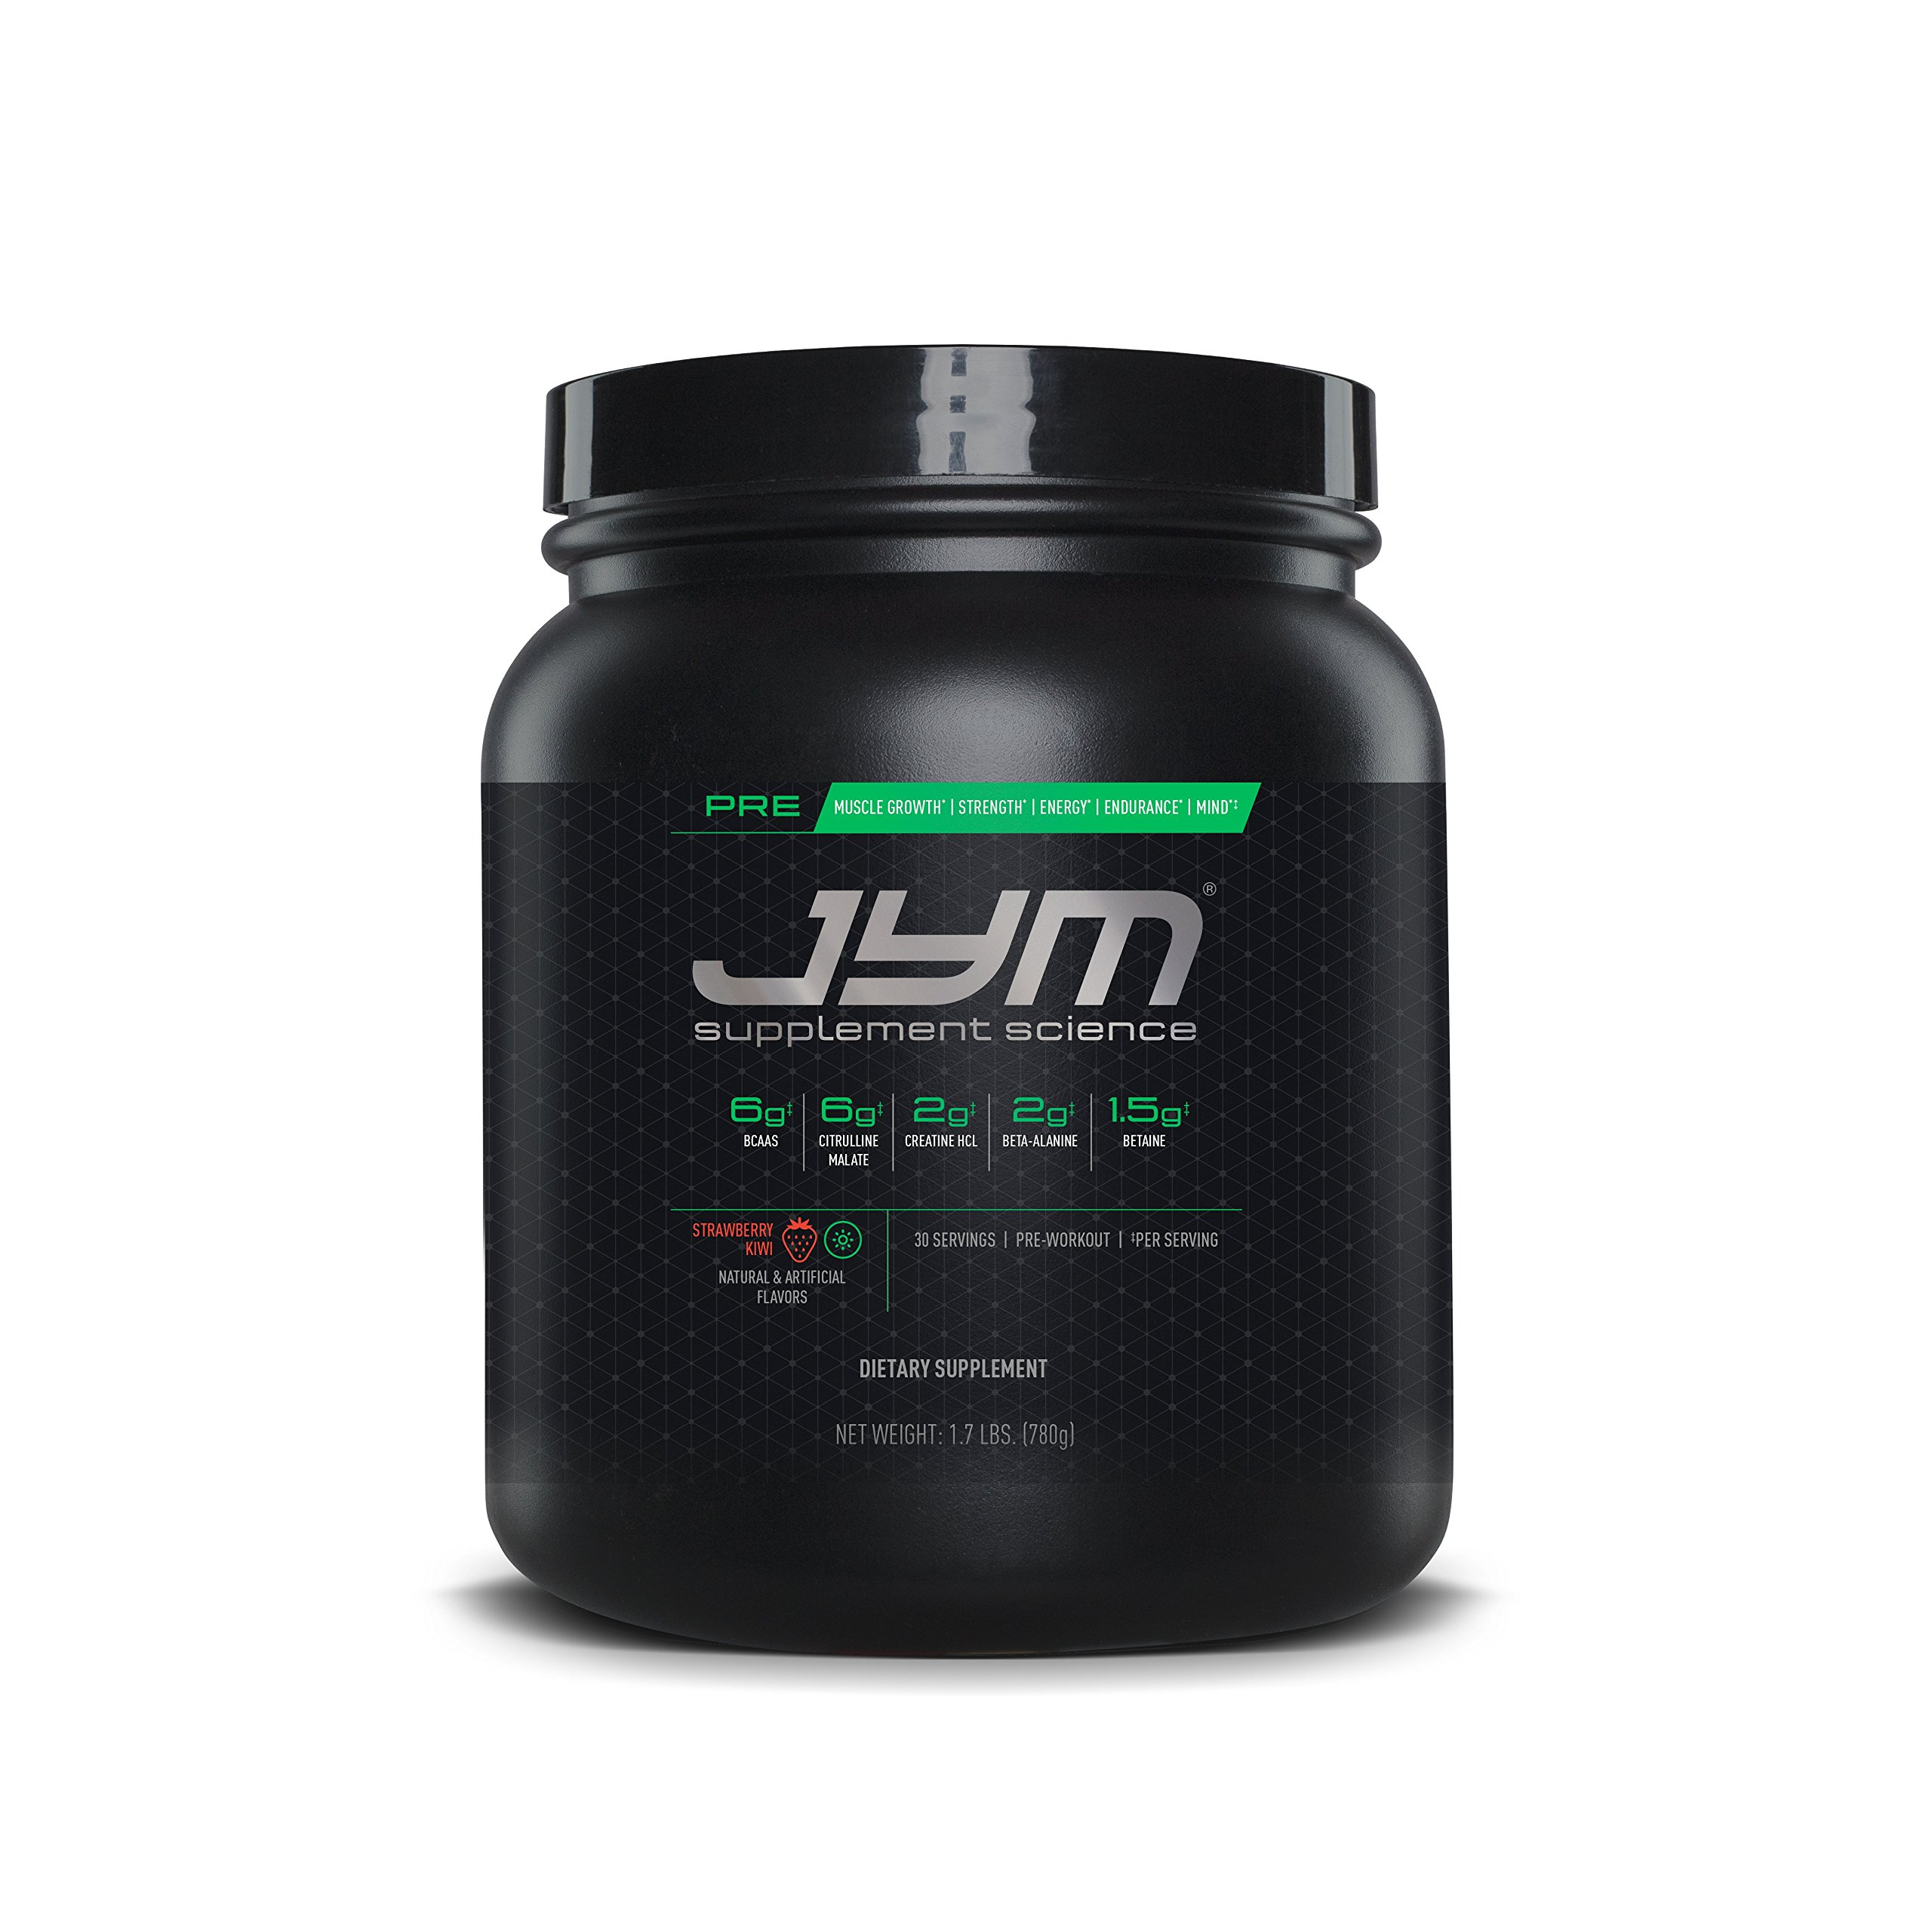 JYM Supplement Science, PRE JYM, Pre-Workout with BCAA's, Creatine HCI, Citrulline Malate, Beta-alanine, Betaine, Alpha-GPC, Beet Root Extract and more, Kiwi Strawberry, 30 Servings